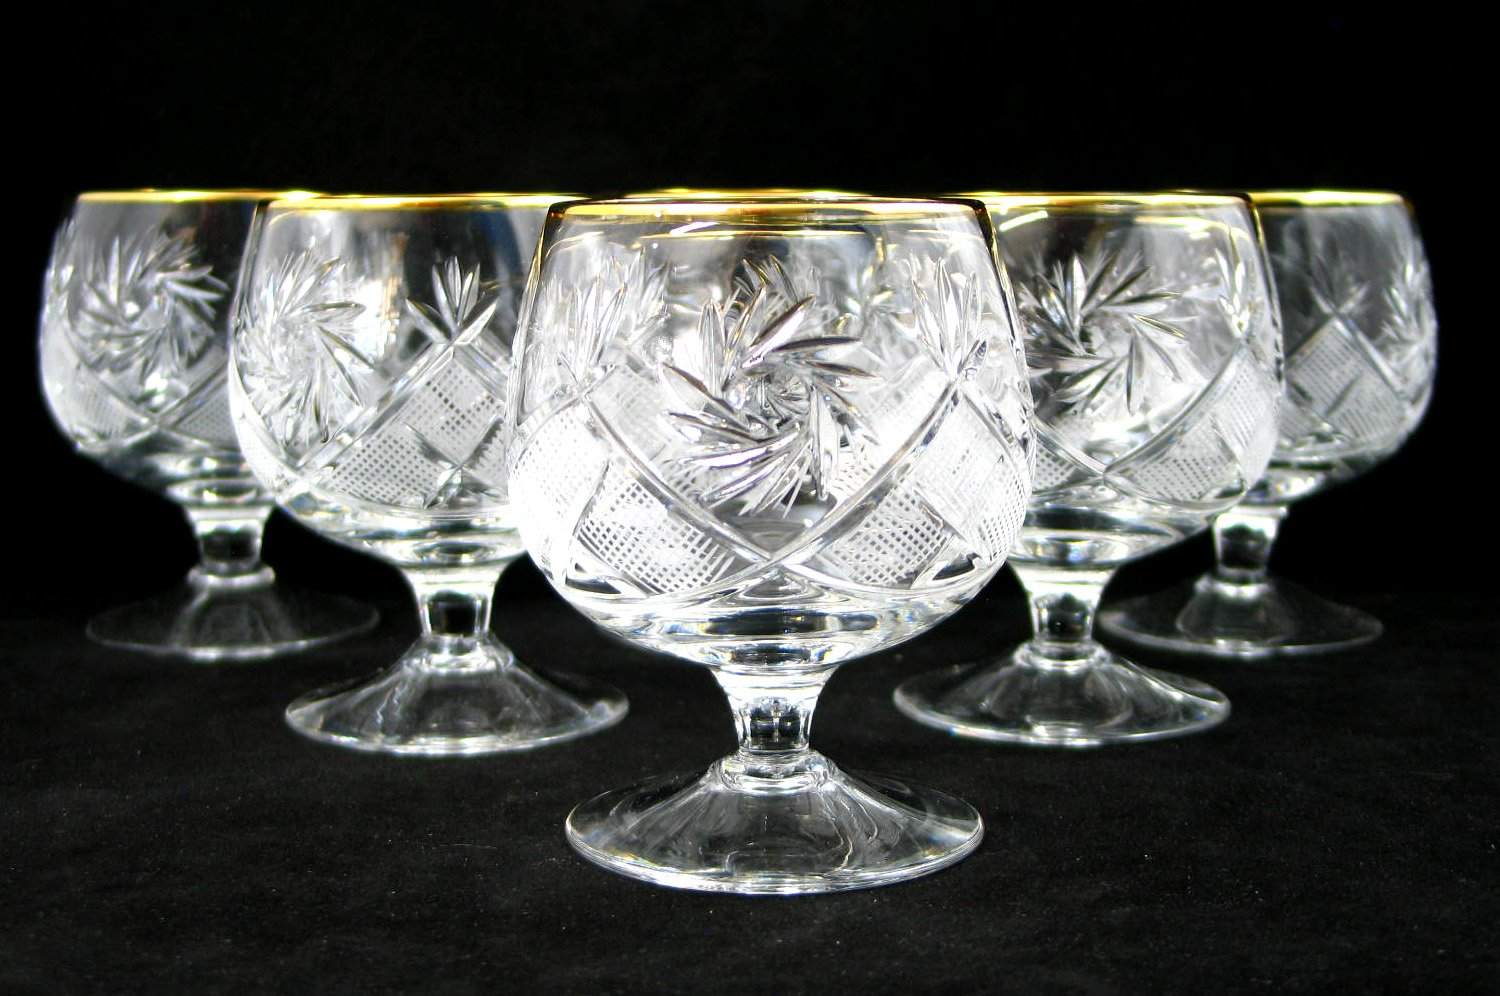 SET of 6 Russian Cut Crystal Cognac Scotch Whiskey Stemmed Snifter Goblet Glass 24K Gold Rimmed 10 Oz. Vodka Liquor Old-fashioned Glassware Hand Made by Neman Crystal (Image #5)